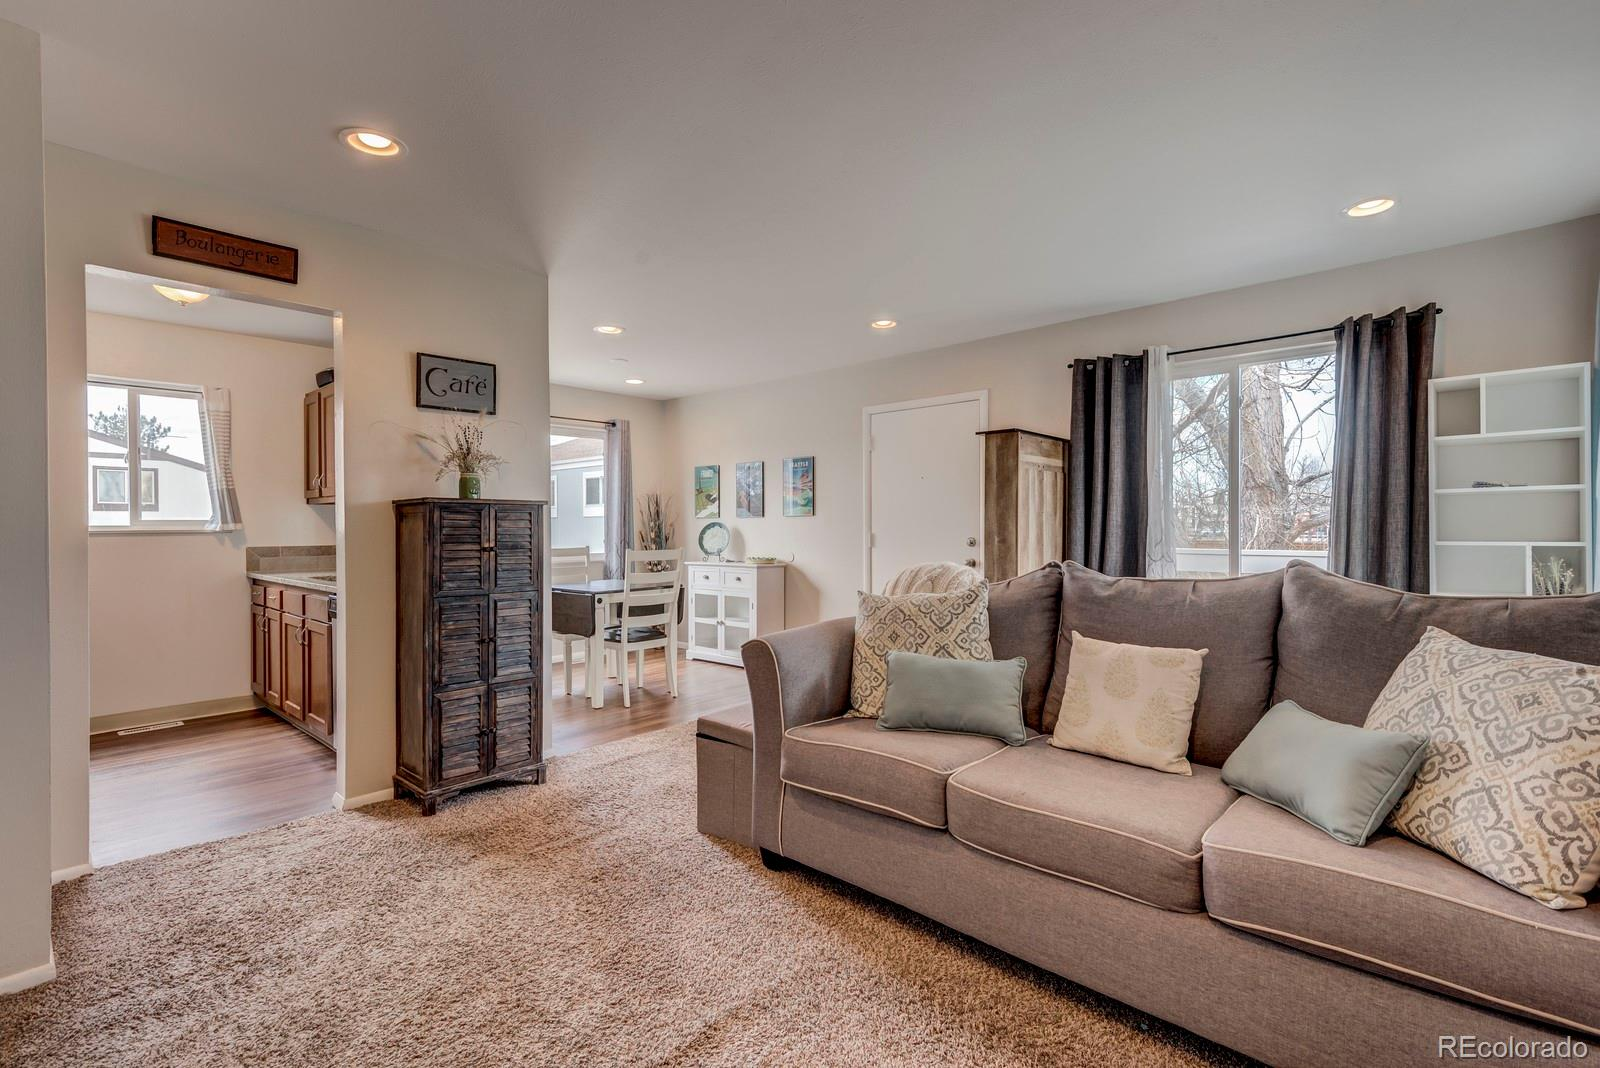 MLS# 2804784 - 1 - 8792 Chase Drive #16, Arvada, CO 80003